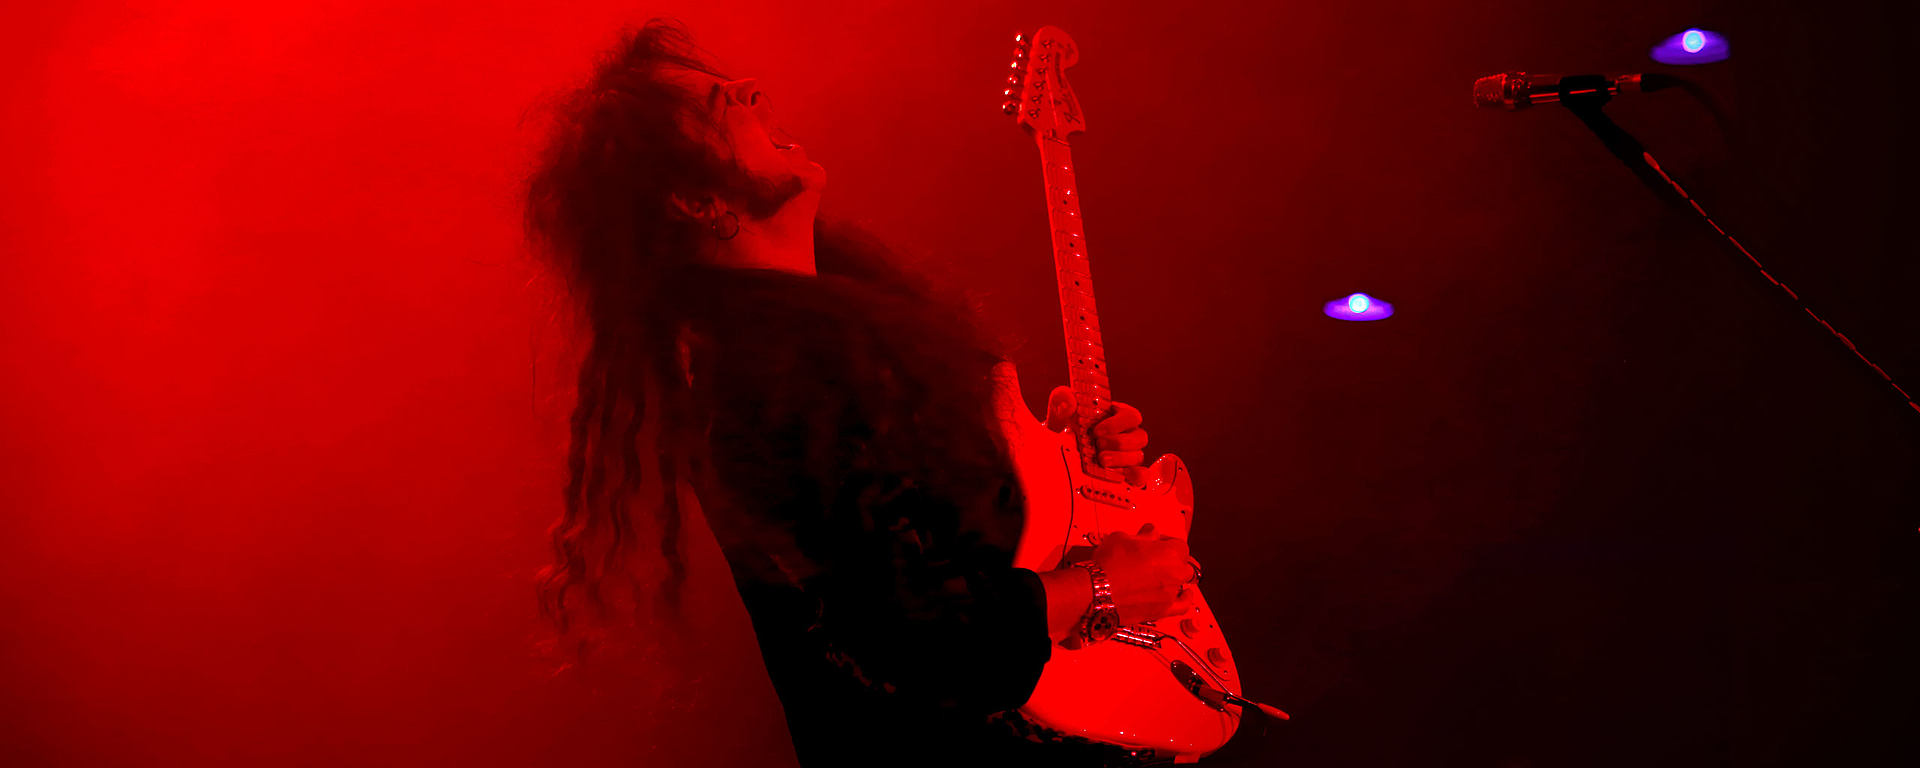 Yngwie Malmsteen uses the LEWITT MTP 550 DM dynamic vocal microphone on stage